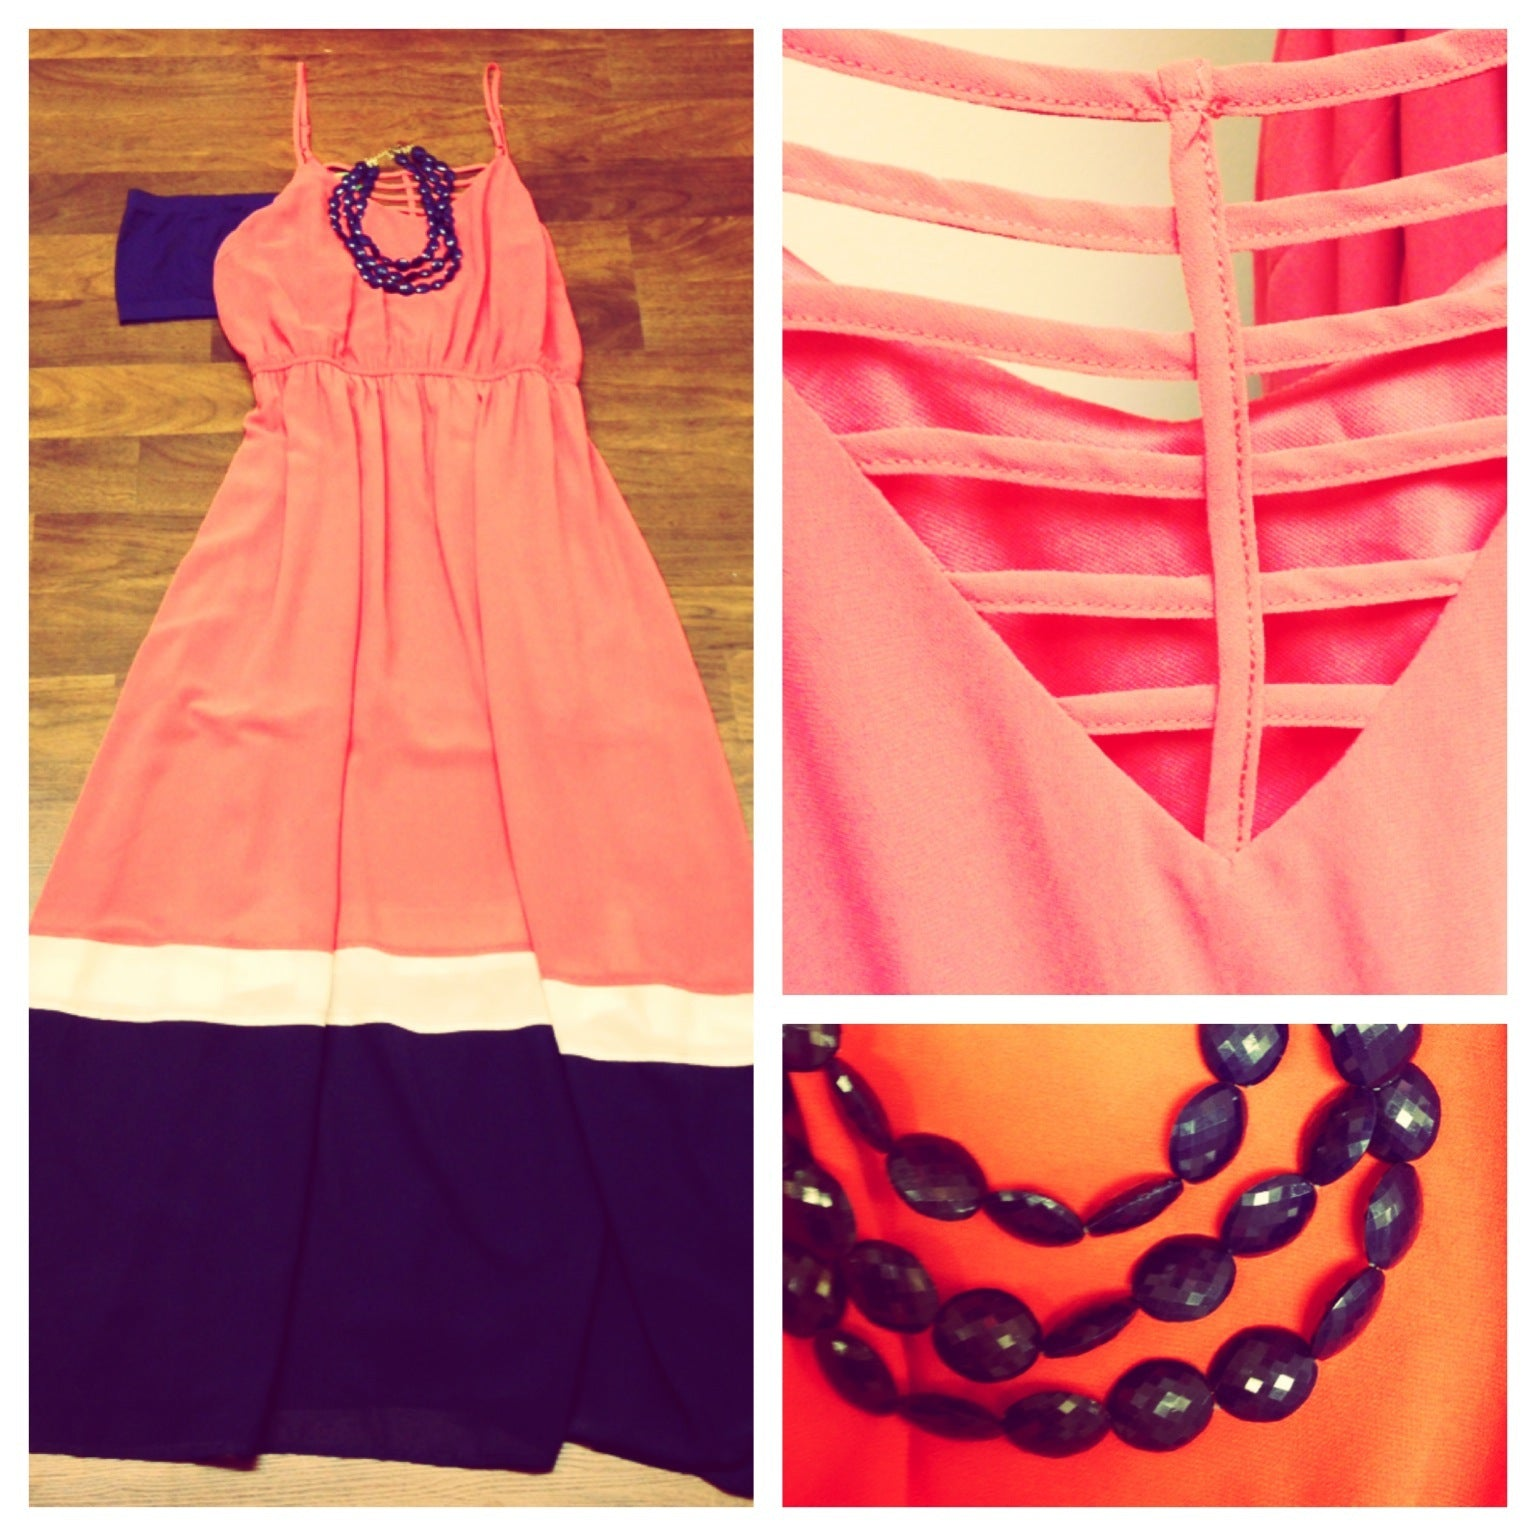 Dress, Maxi, Coral, Cream, Navy, Bubble Necklace, Necklace, Bandeau, Caged back, Detailed back, Casual, OOTD, outfit of the day, multicolored